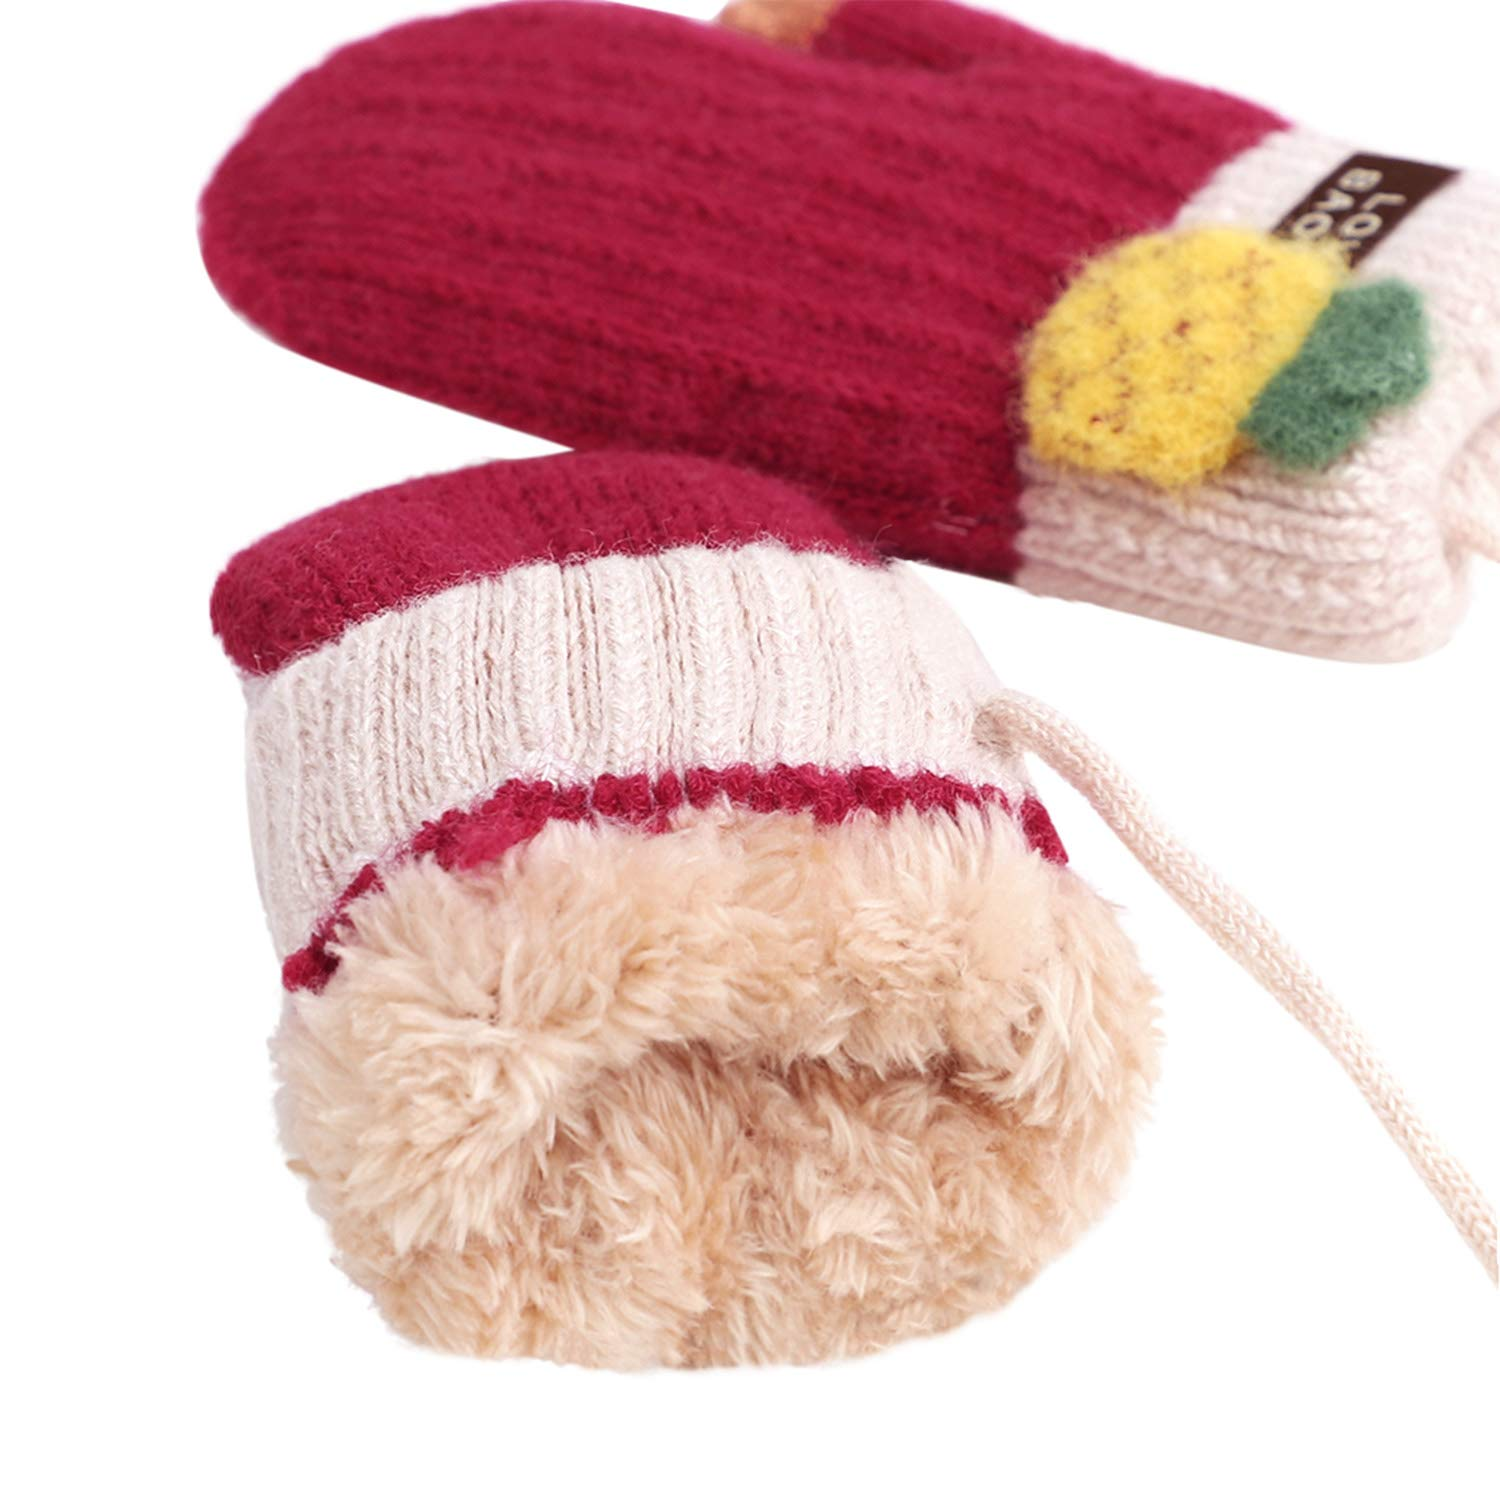 Thicken Fleece Knit Gloves with Fruits Decor Kids Cycling Mittens for 3-6 Yrs